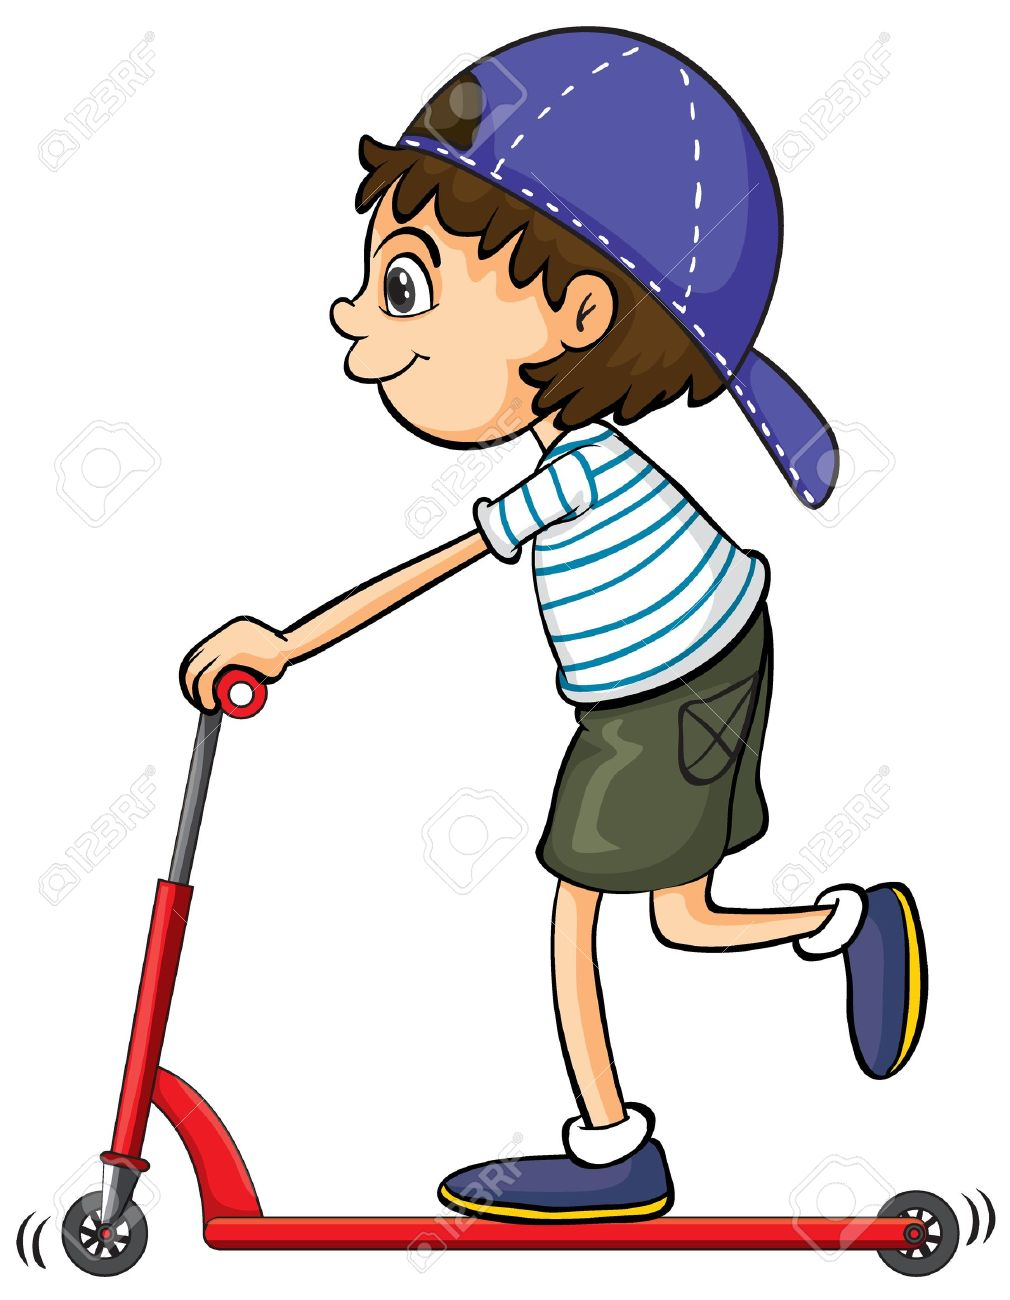 Illustration of a boy playing push bicycle on a white background Stock Vector - 17100329